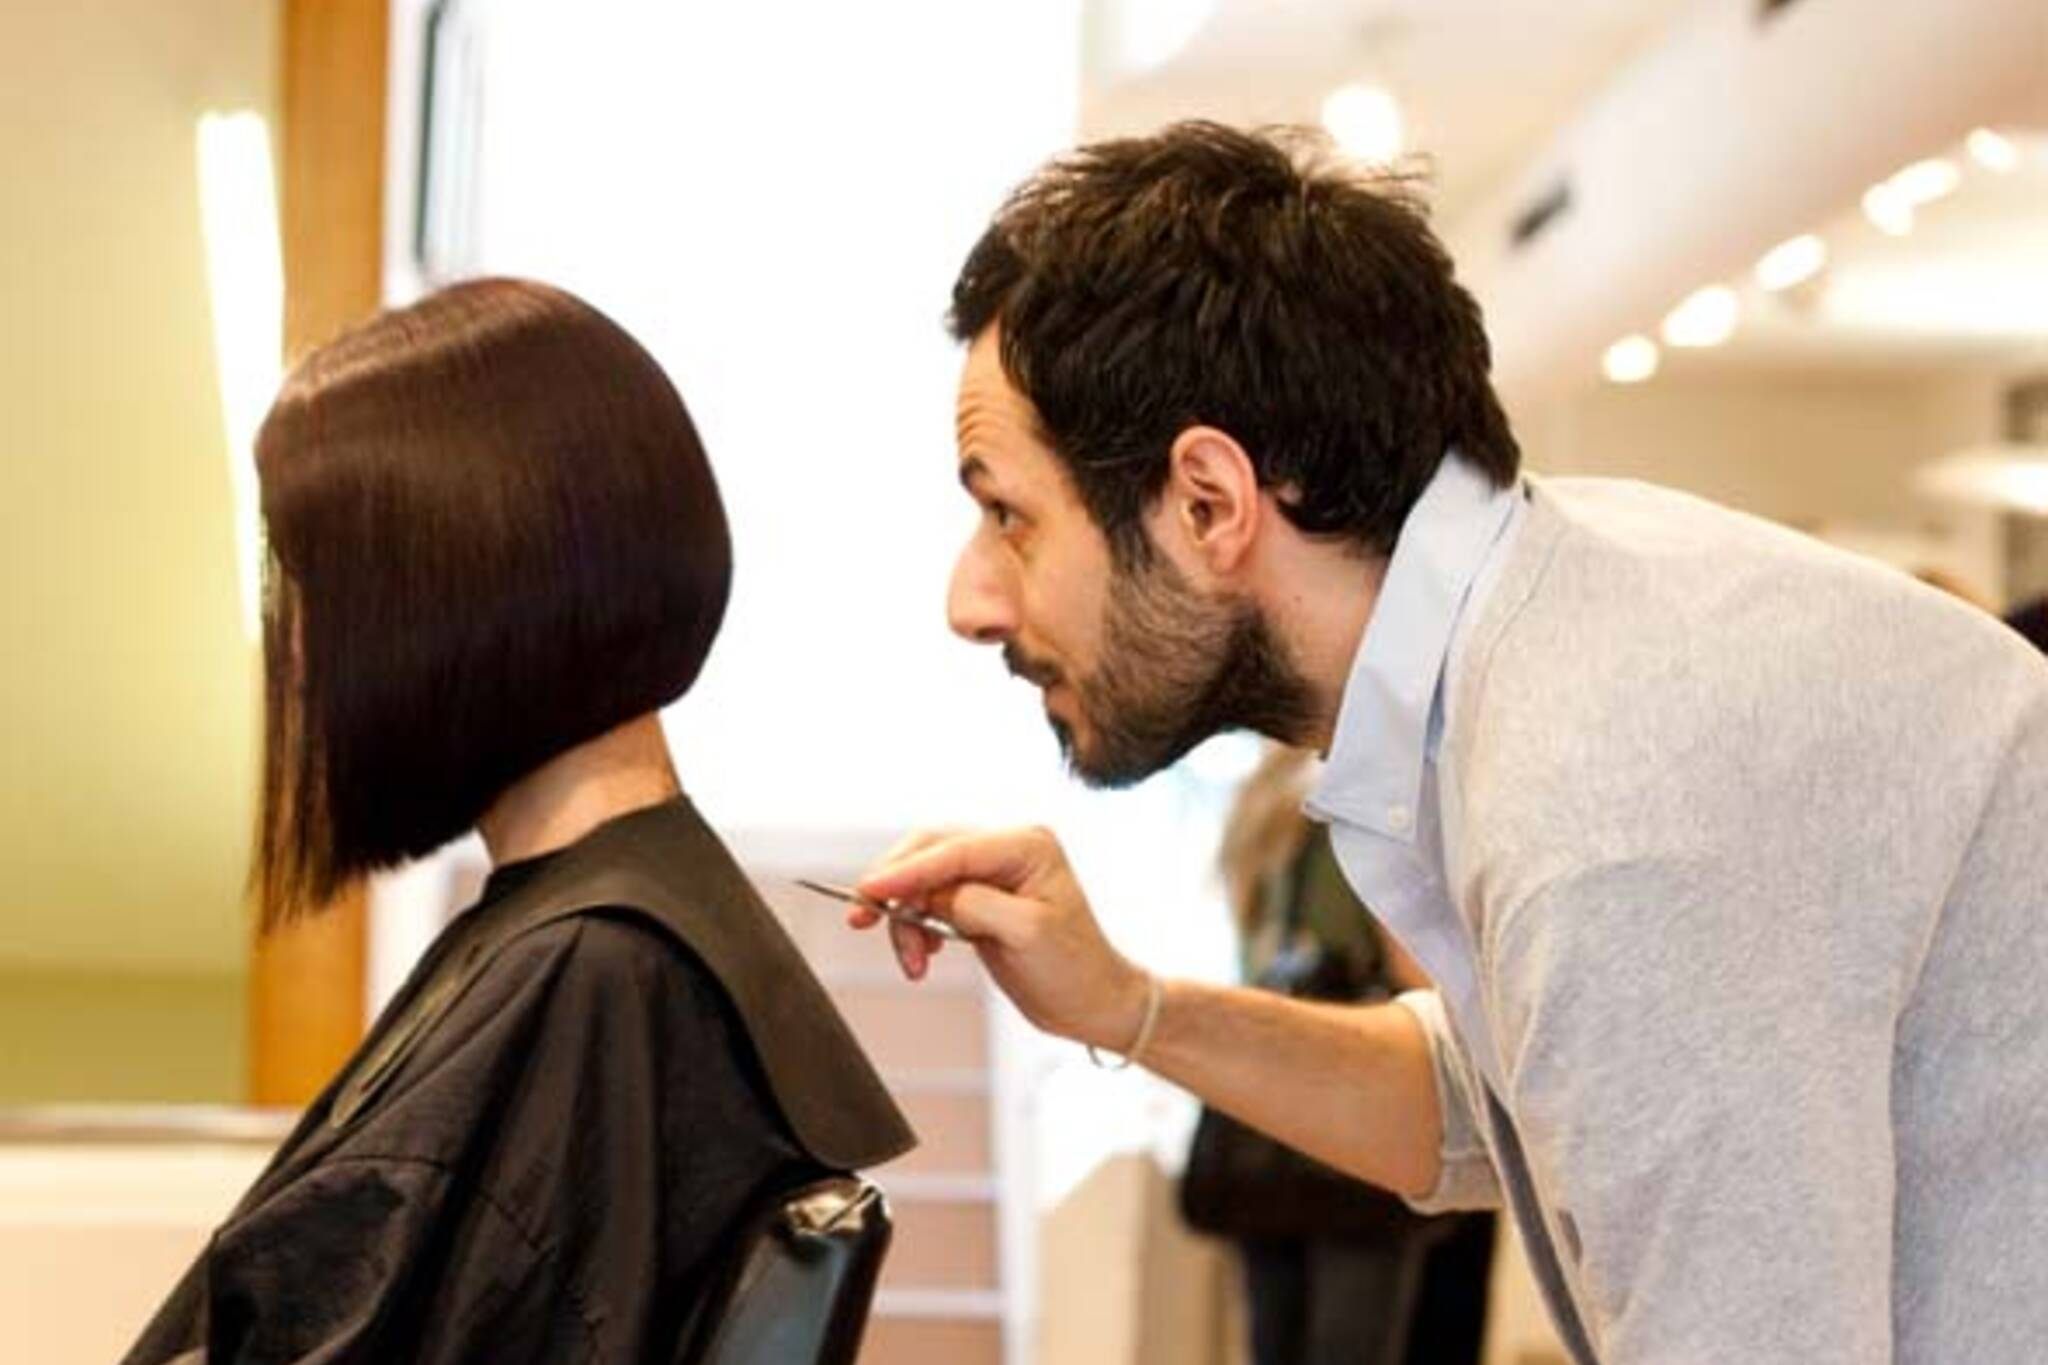 Where To Get A Free Or Almost Free Haircut In Toronto